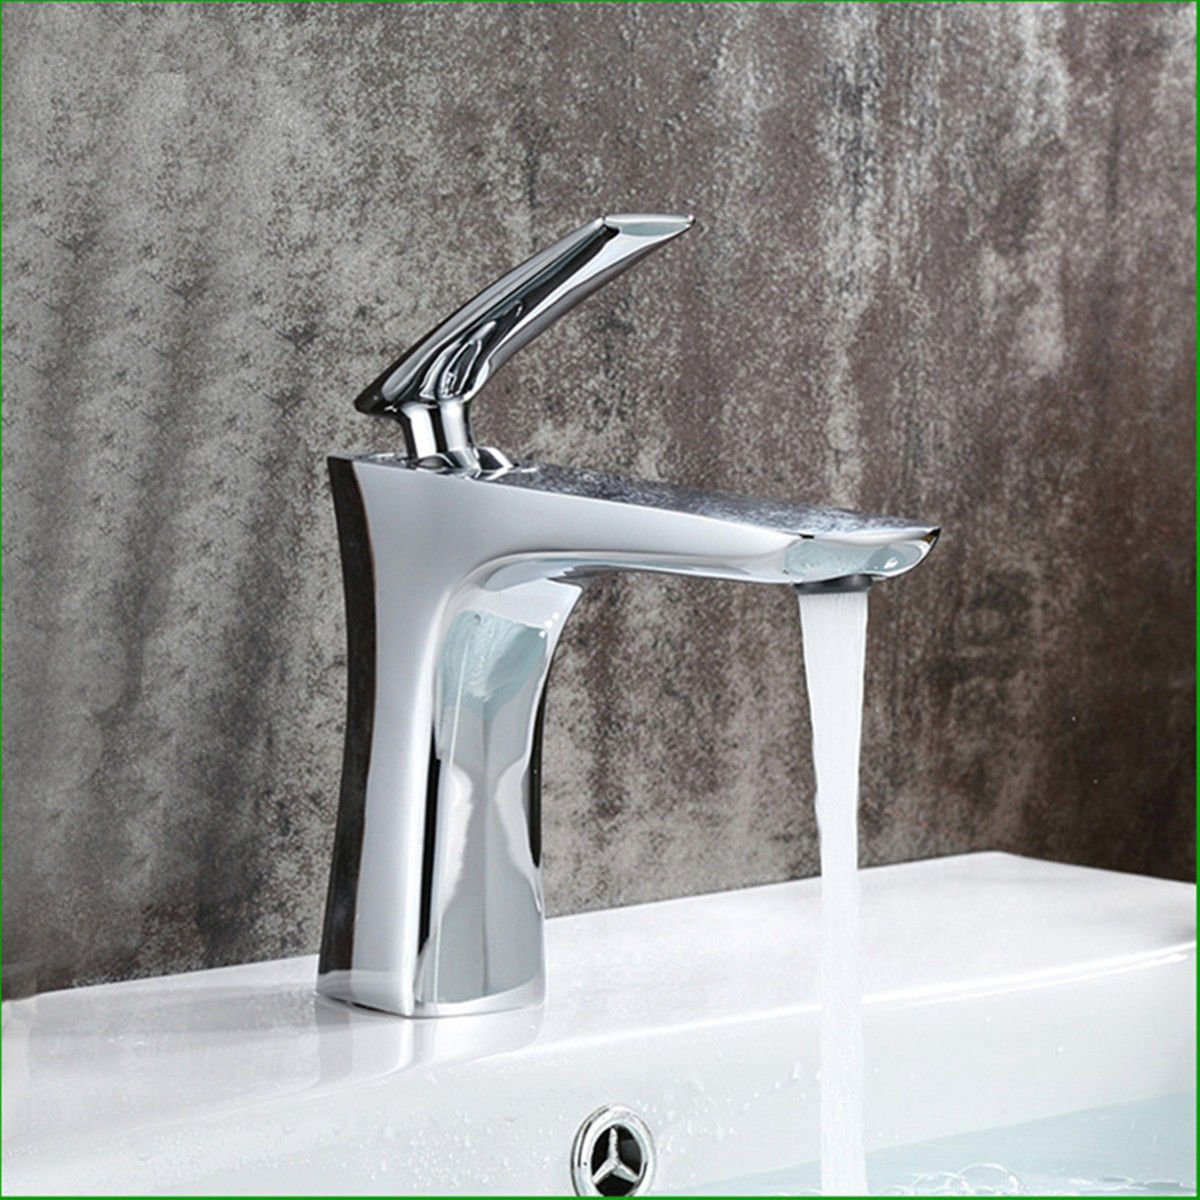 Lalaky Taps Faucet Kitchen Mixer Sink Waterfall Bathroom Mixer Basin Mixer Tap for Kitchen Bathroom and Washroom Copper Chrome Hot and Cold Single Hole